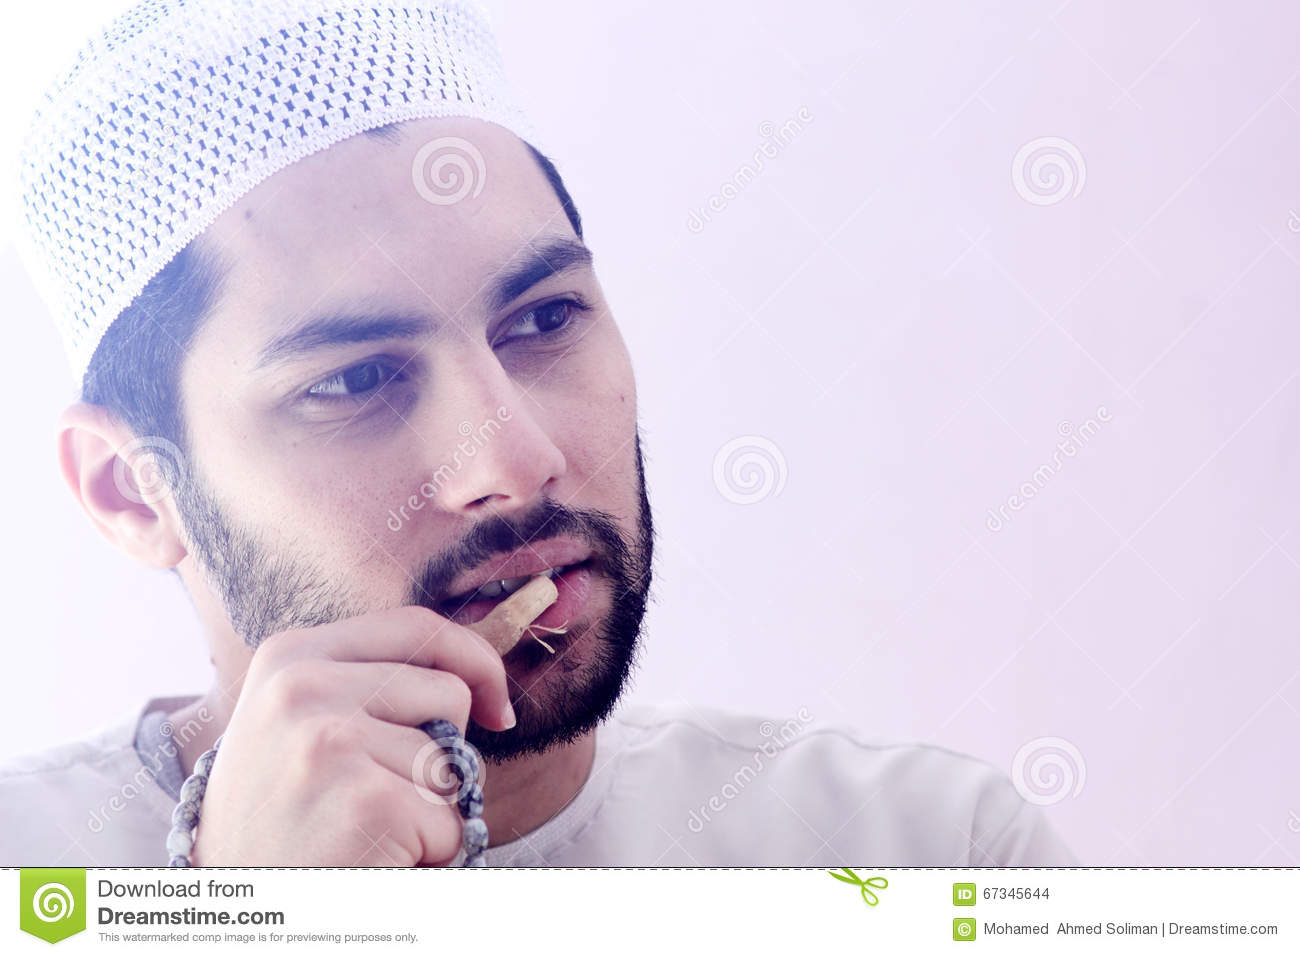 muslim stock images - download 176,302 photos